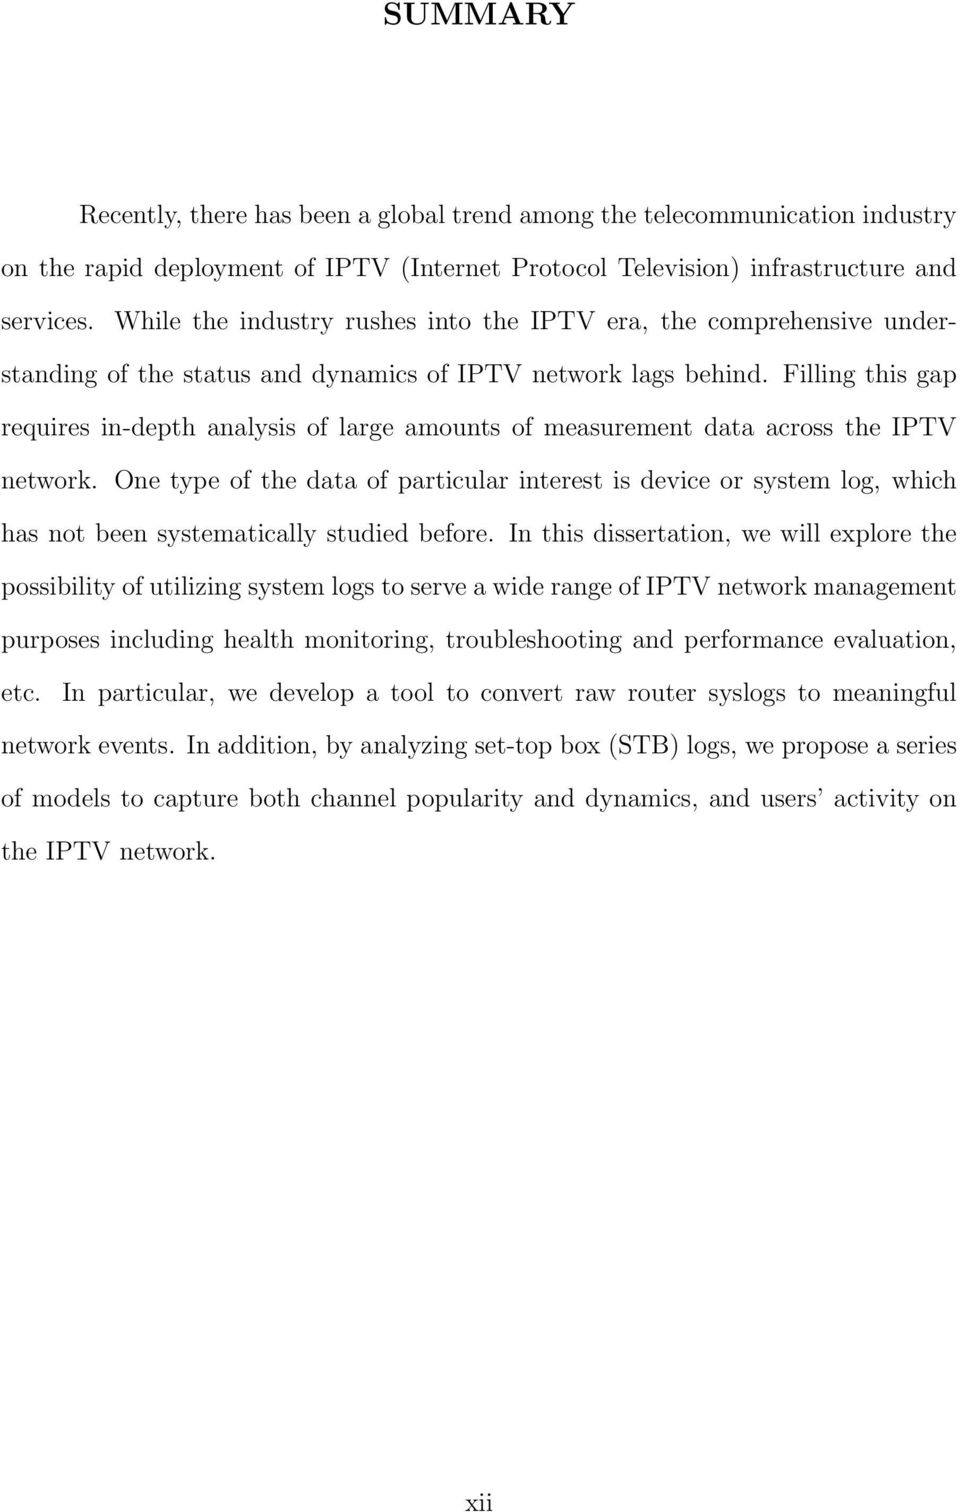 Filling this gap requires in-depth analysis of large amounts of measurement data across the IPTV network.